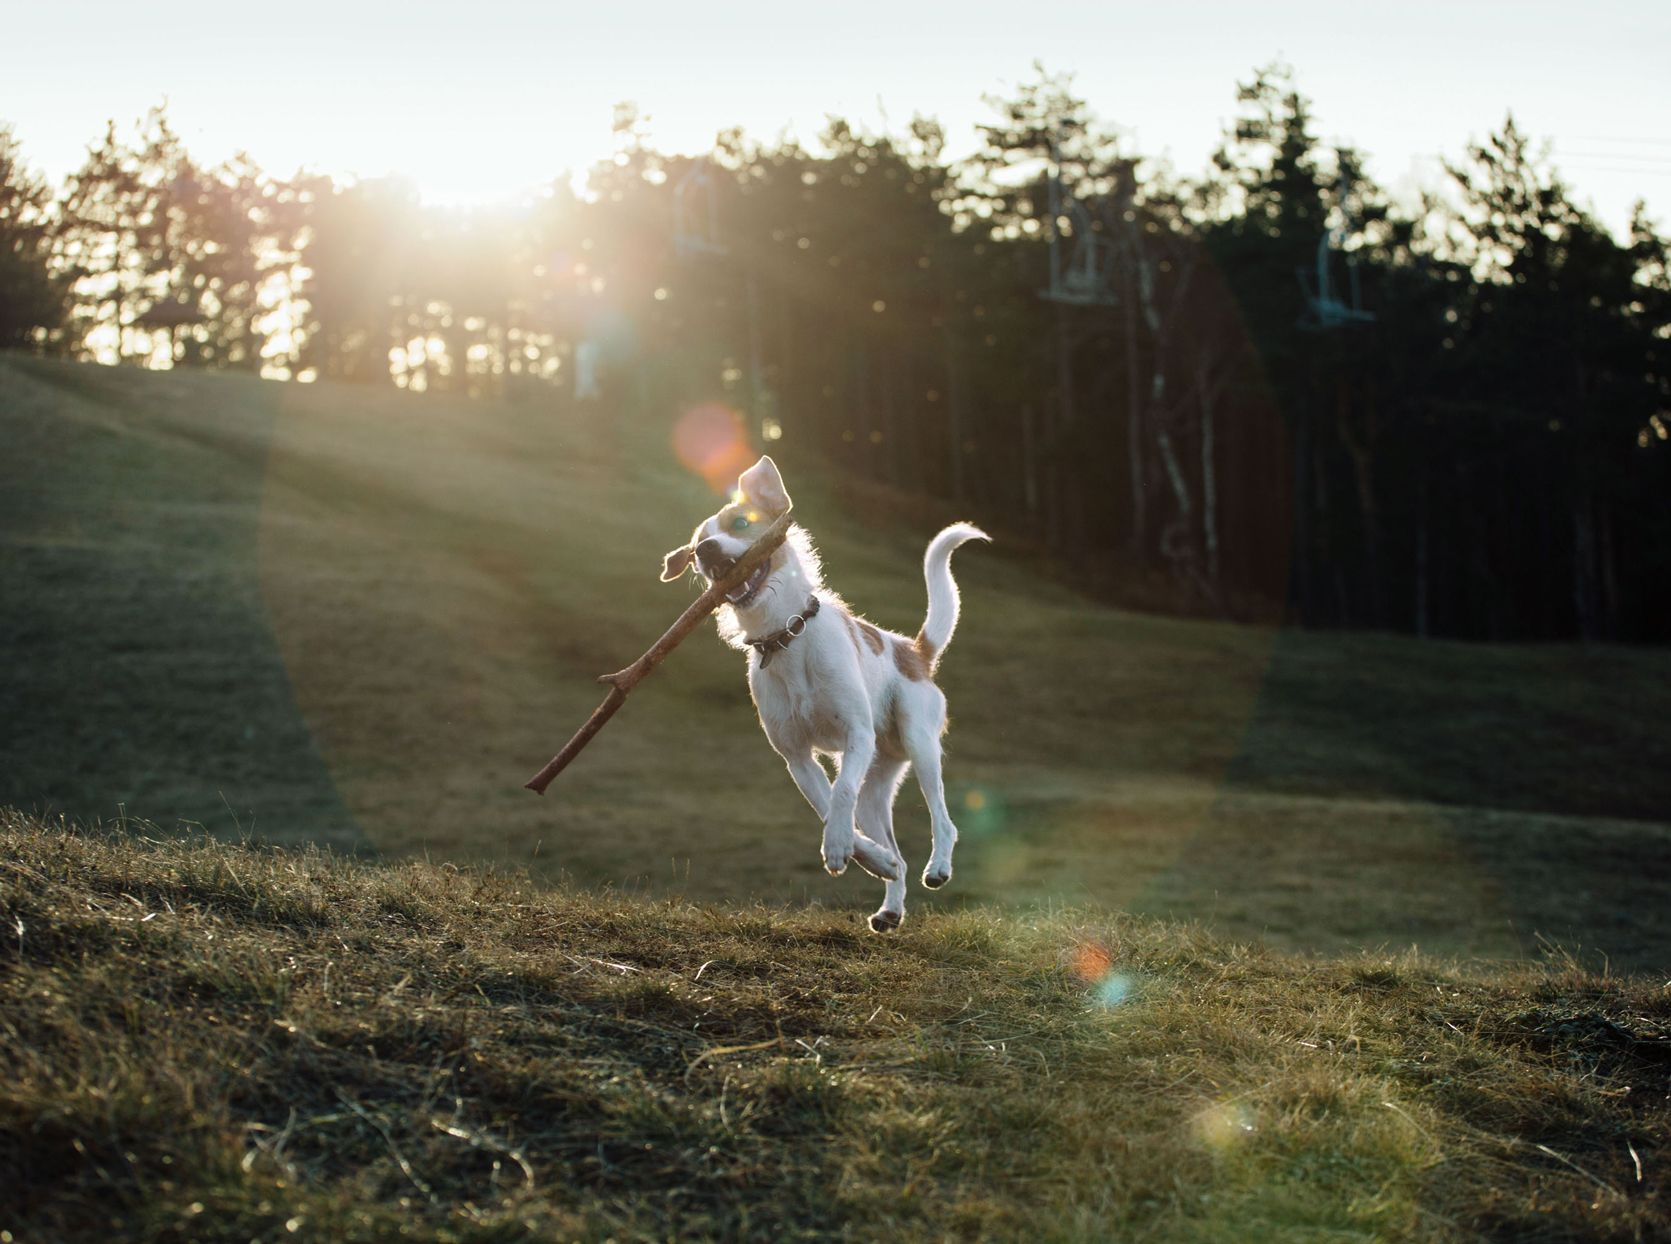 dog catching stick outside mid-air